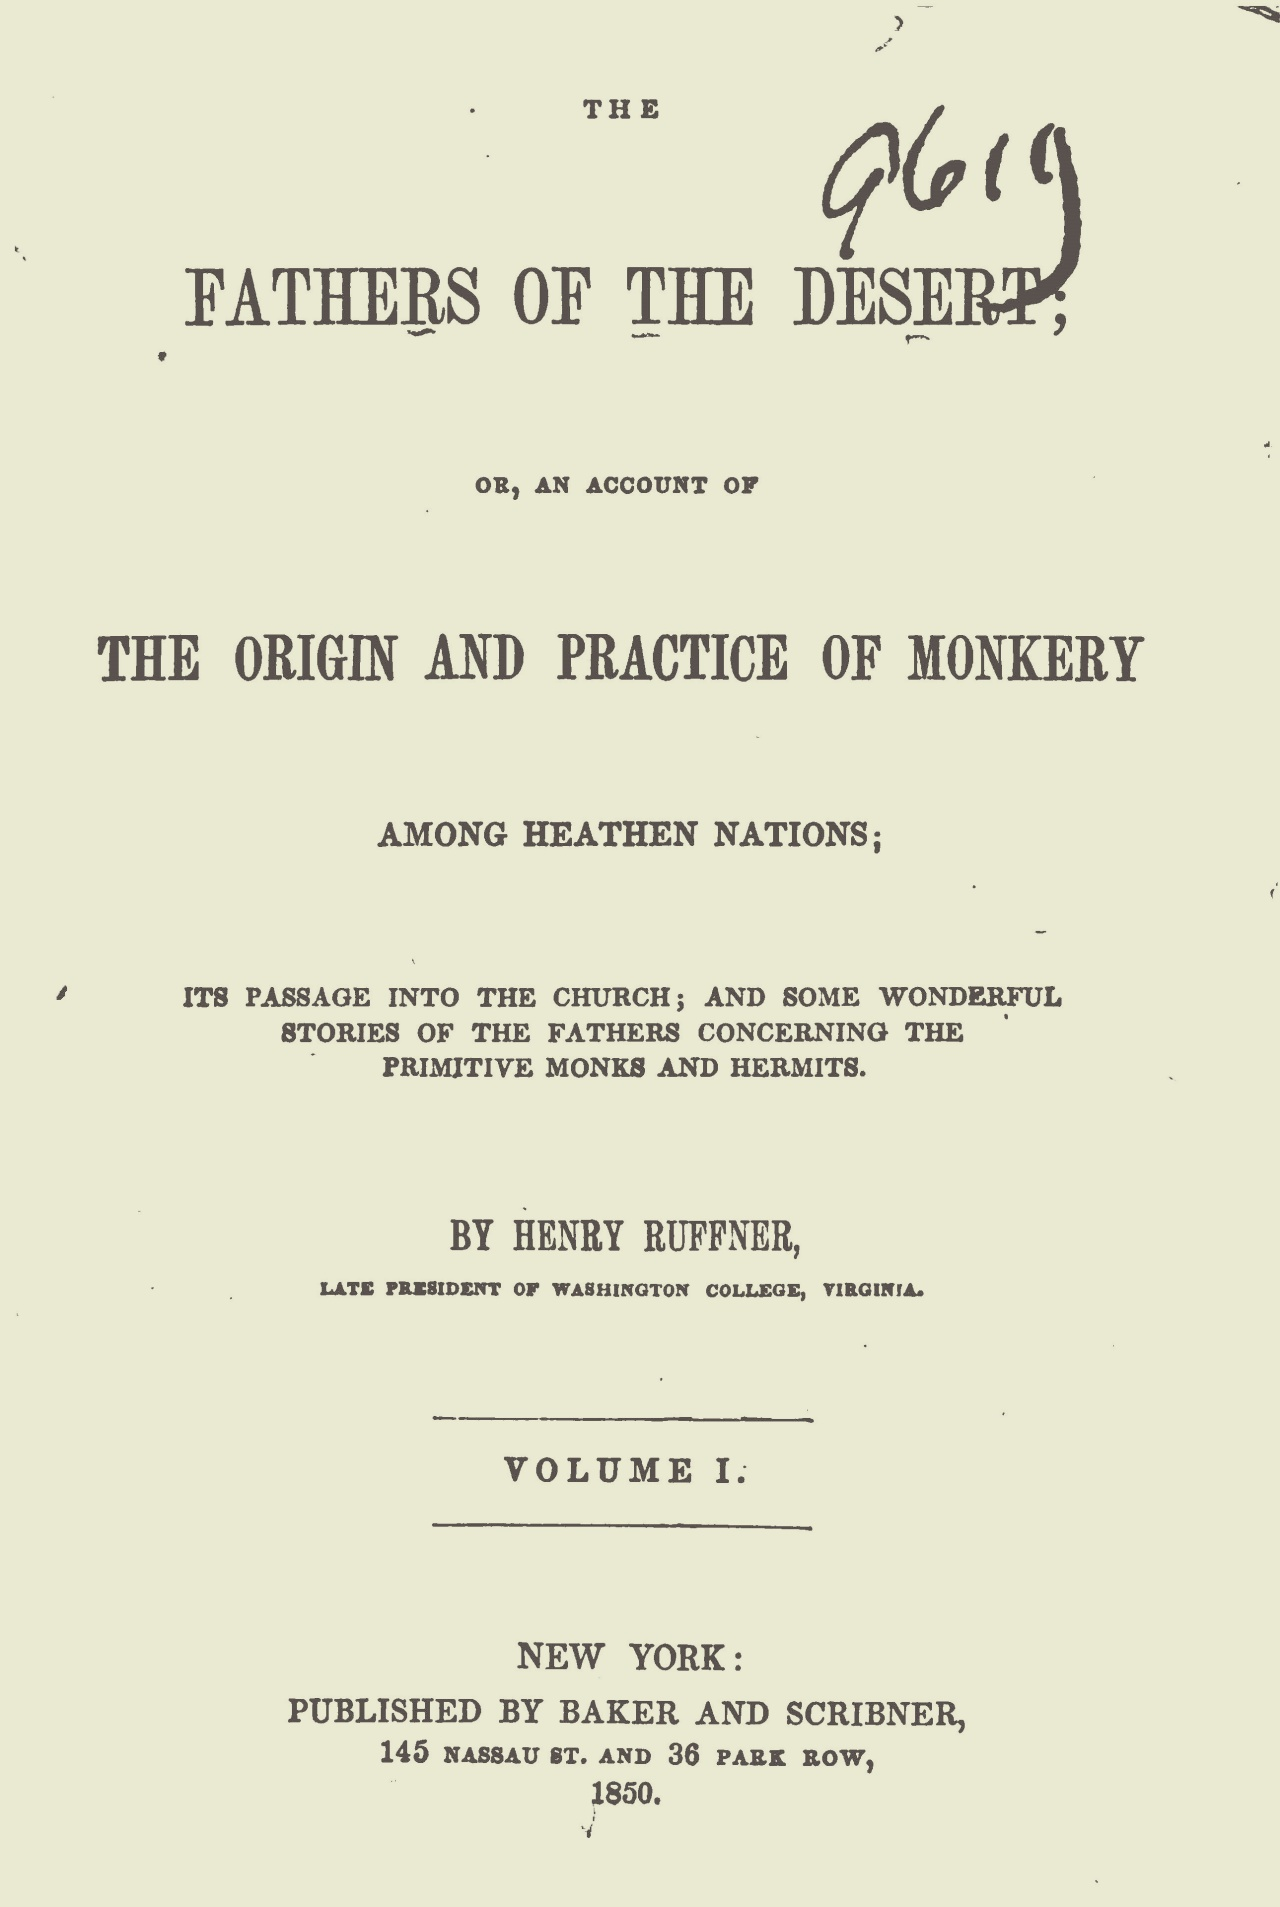 Ruffner, Henry, The Fathers of the Desert, Vol. 1 Title Page.jpg